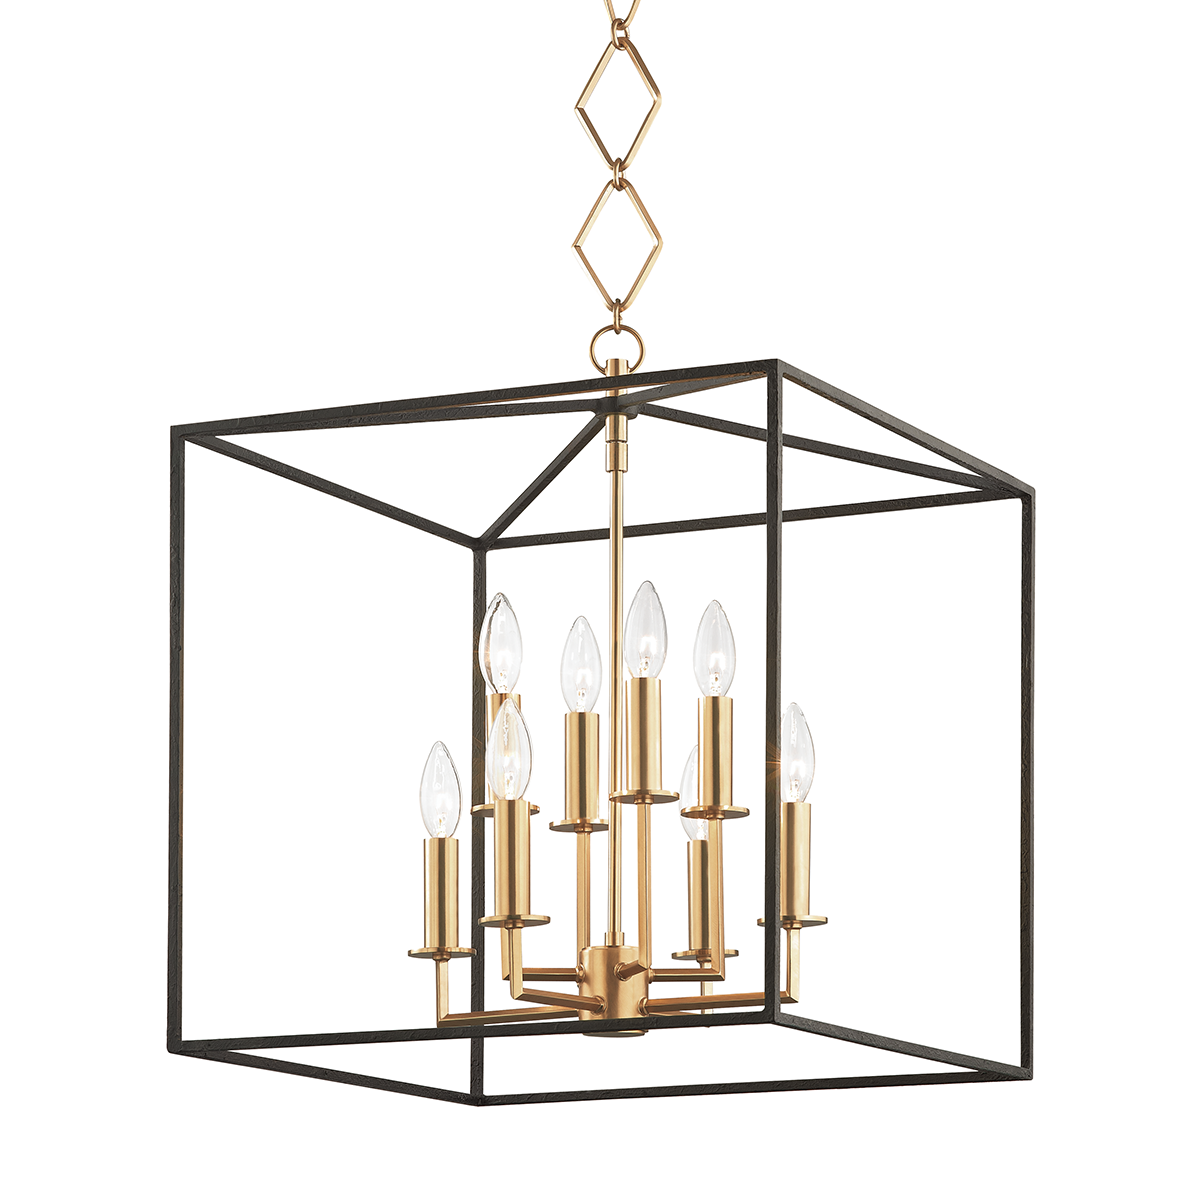 Hudson Valley's new lanterns in the Richie collection